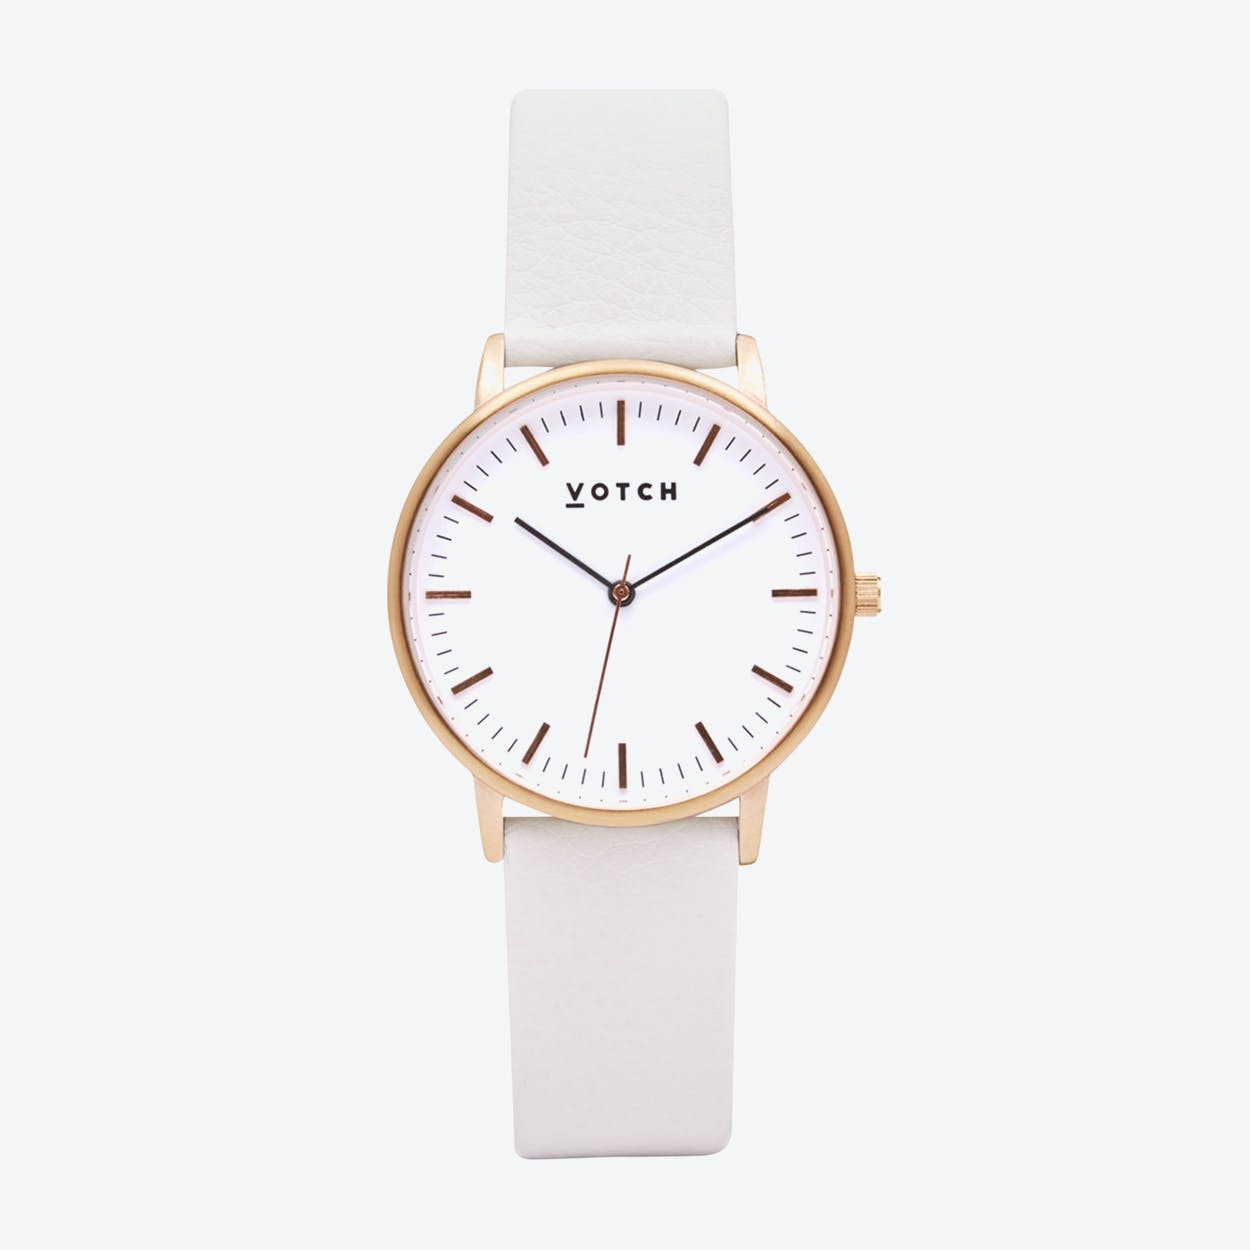 Intense Classic Watch in Rose Gold with White Face and Off-White Vegan Leather Strap, 36mm